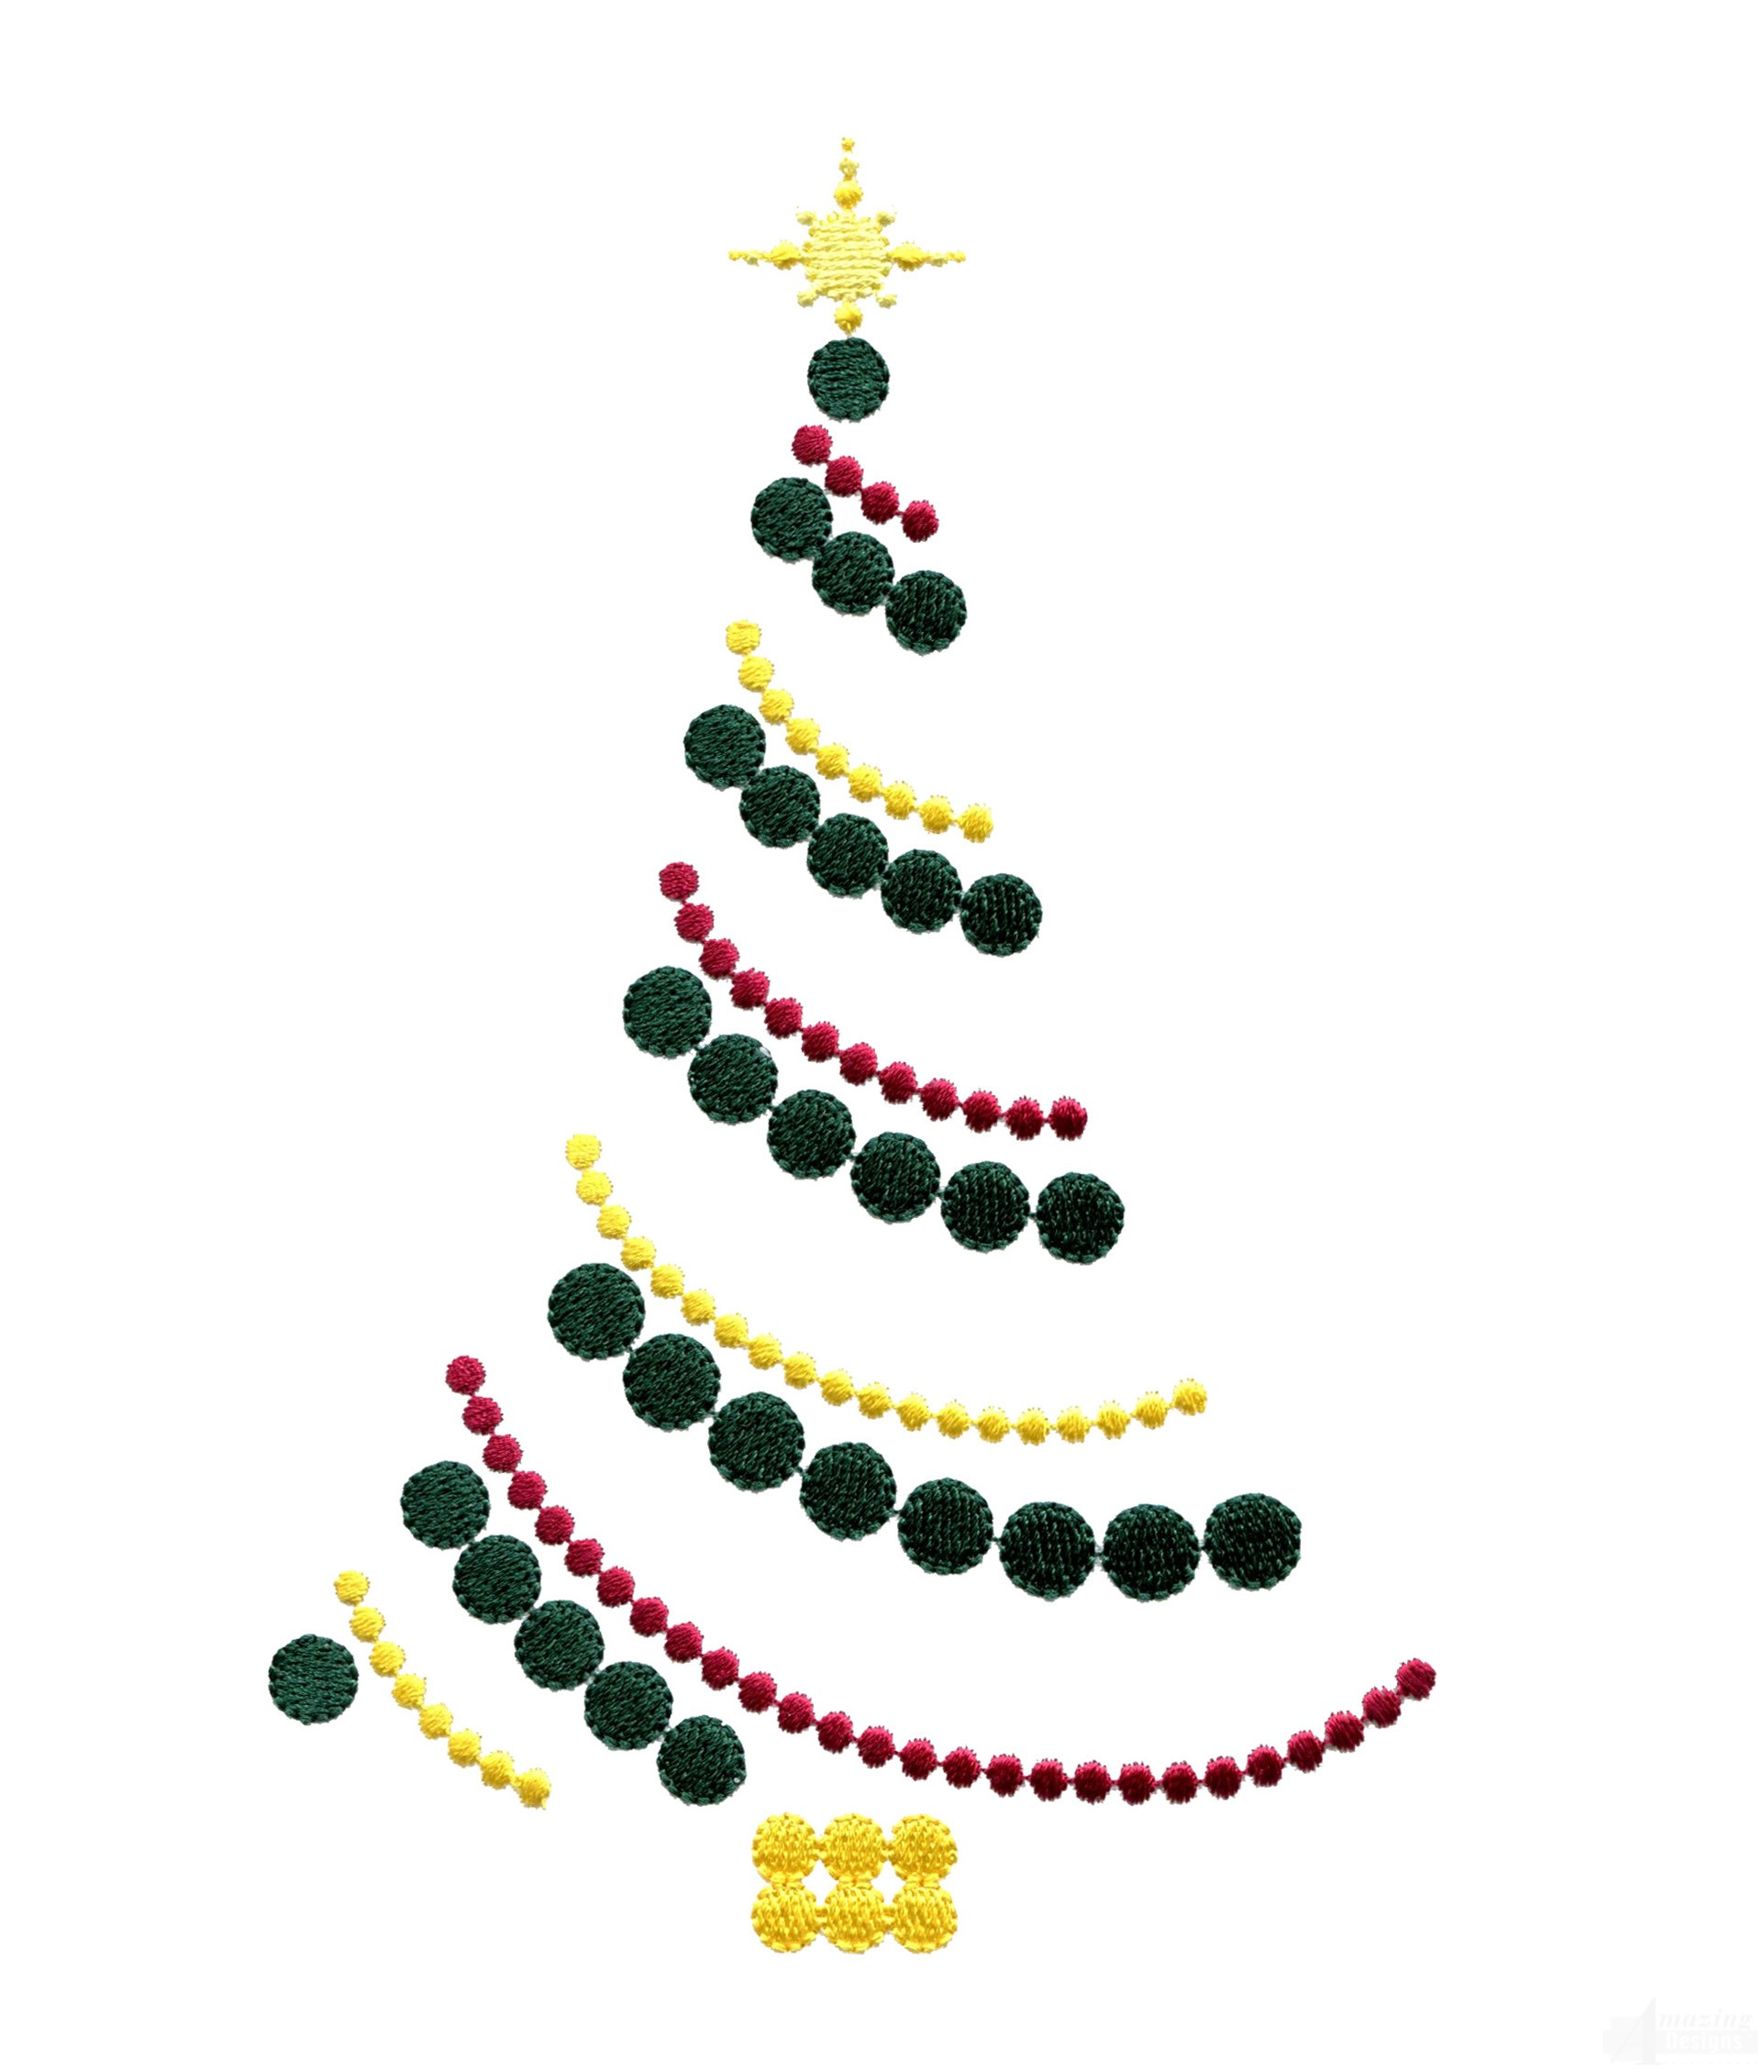 Ornament Chain Christmas Tree Embroidery Design